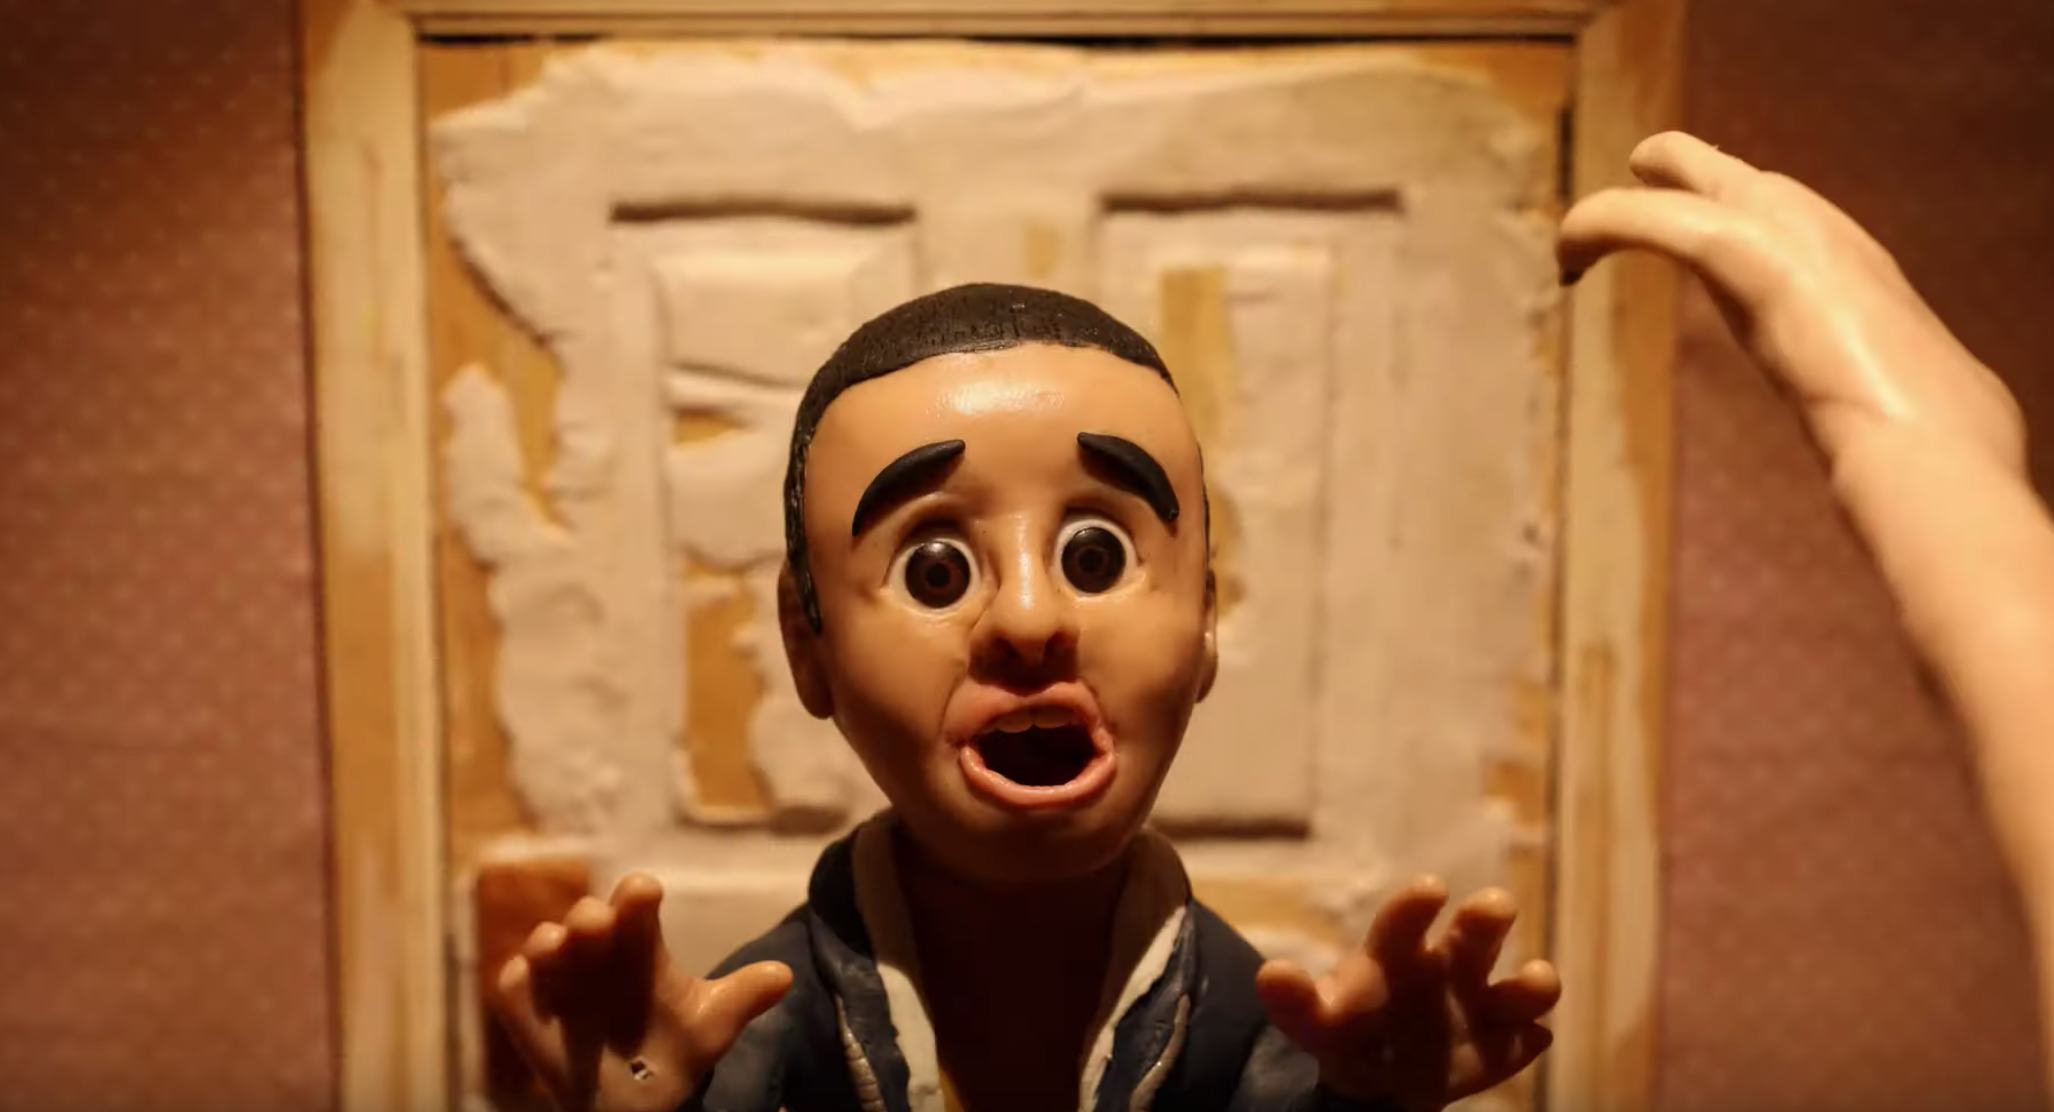 This 40-Second Stop Motion Animation Short Called 'Nightmare' Really Is Pure Nightmare Fuel